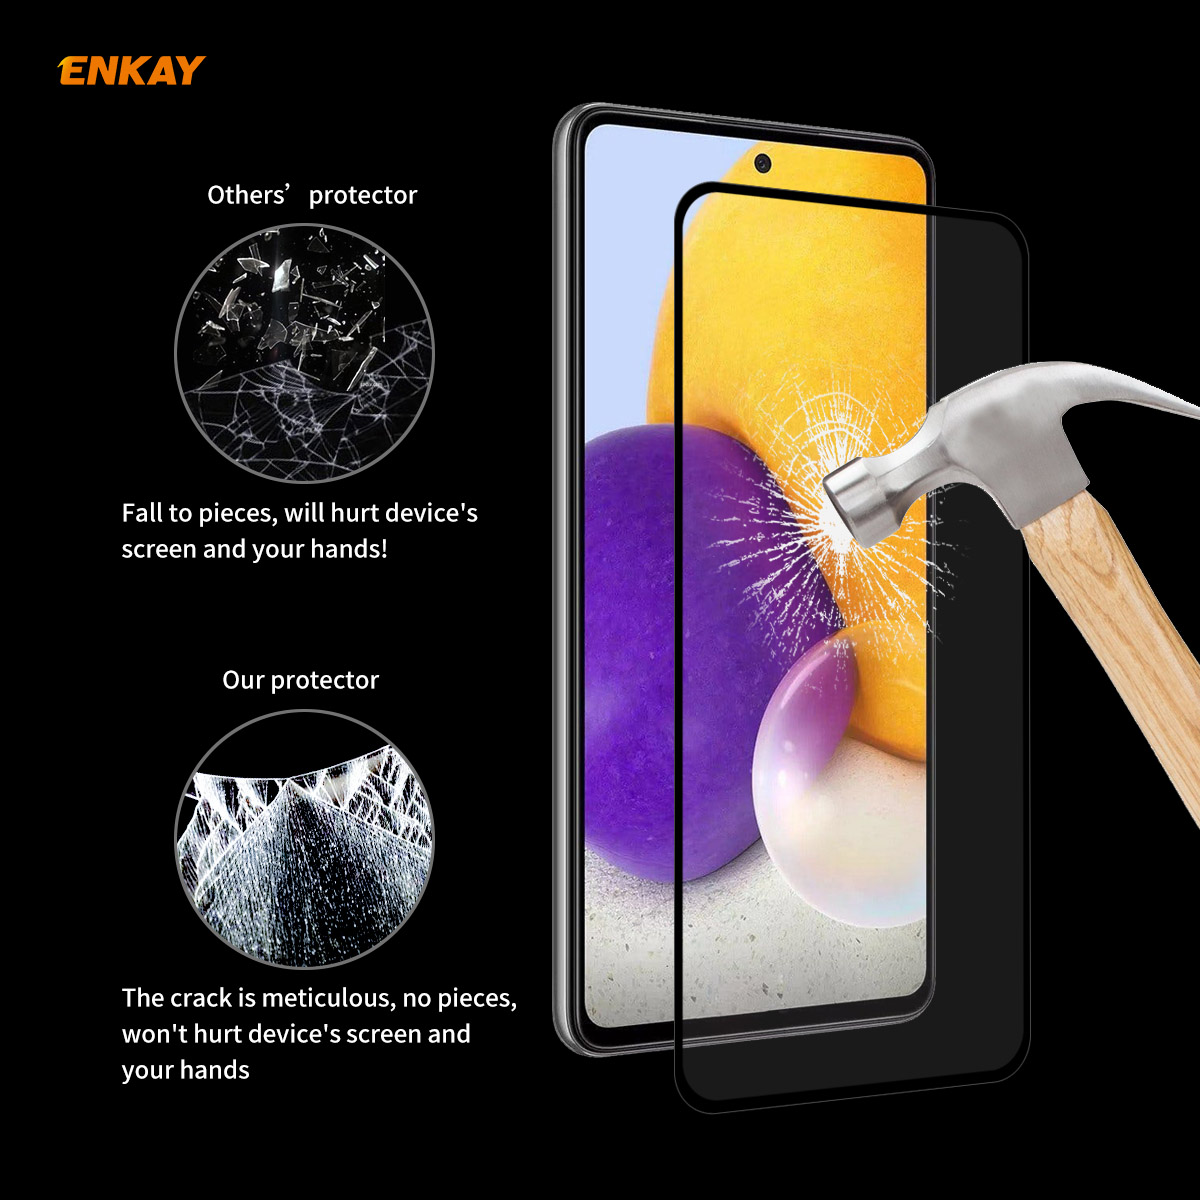 ENKAY Hat-Prince Screen Protector for Samsung Galaxy A72 5G/Samsung Galaxy A52 5G 10PCS - Black Samsung Galaxy A72 5G